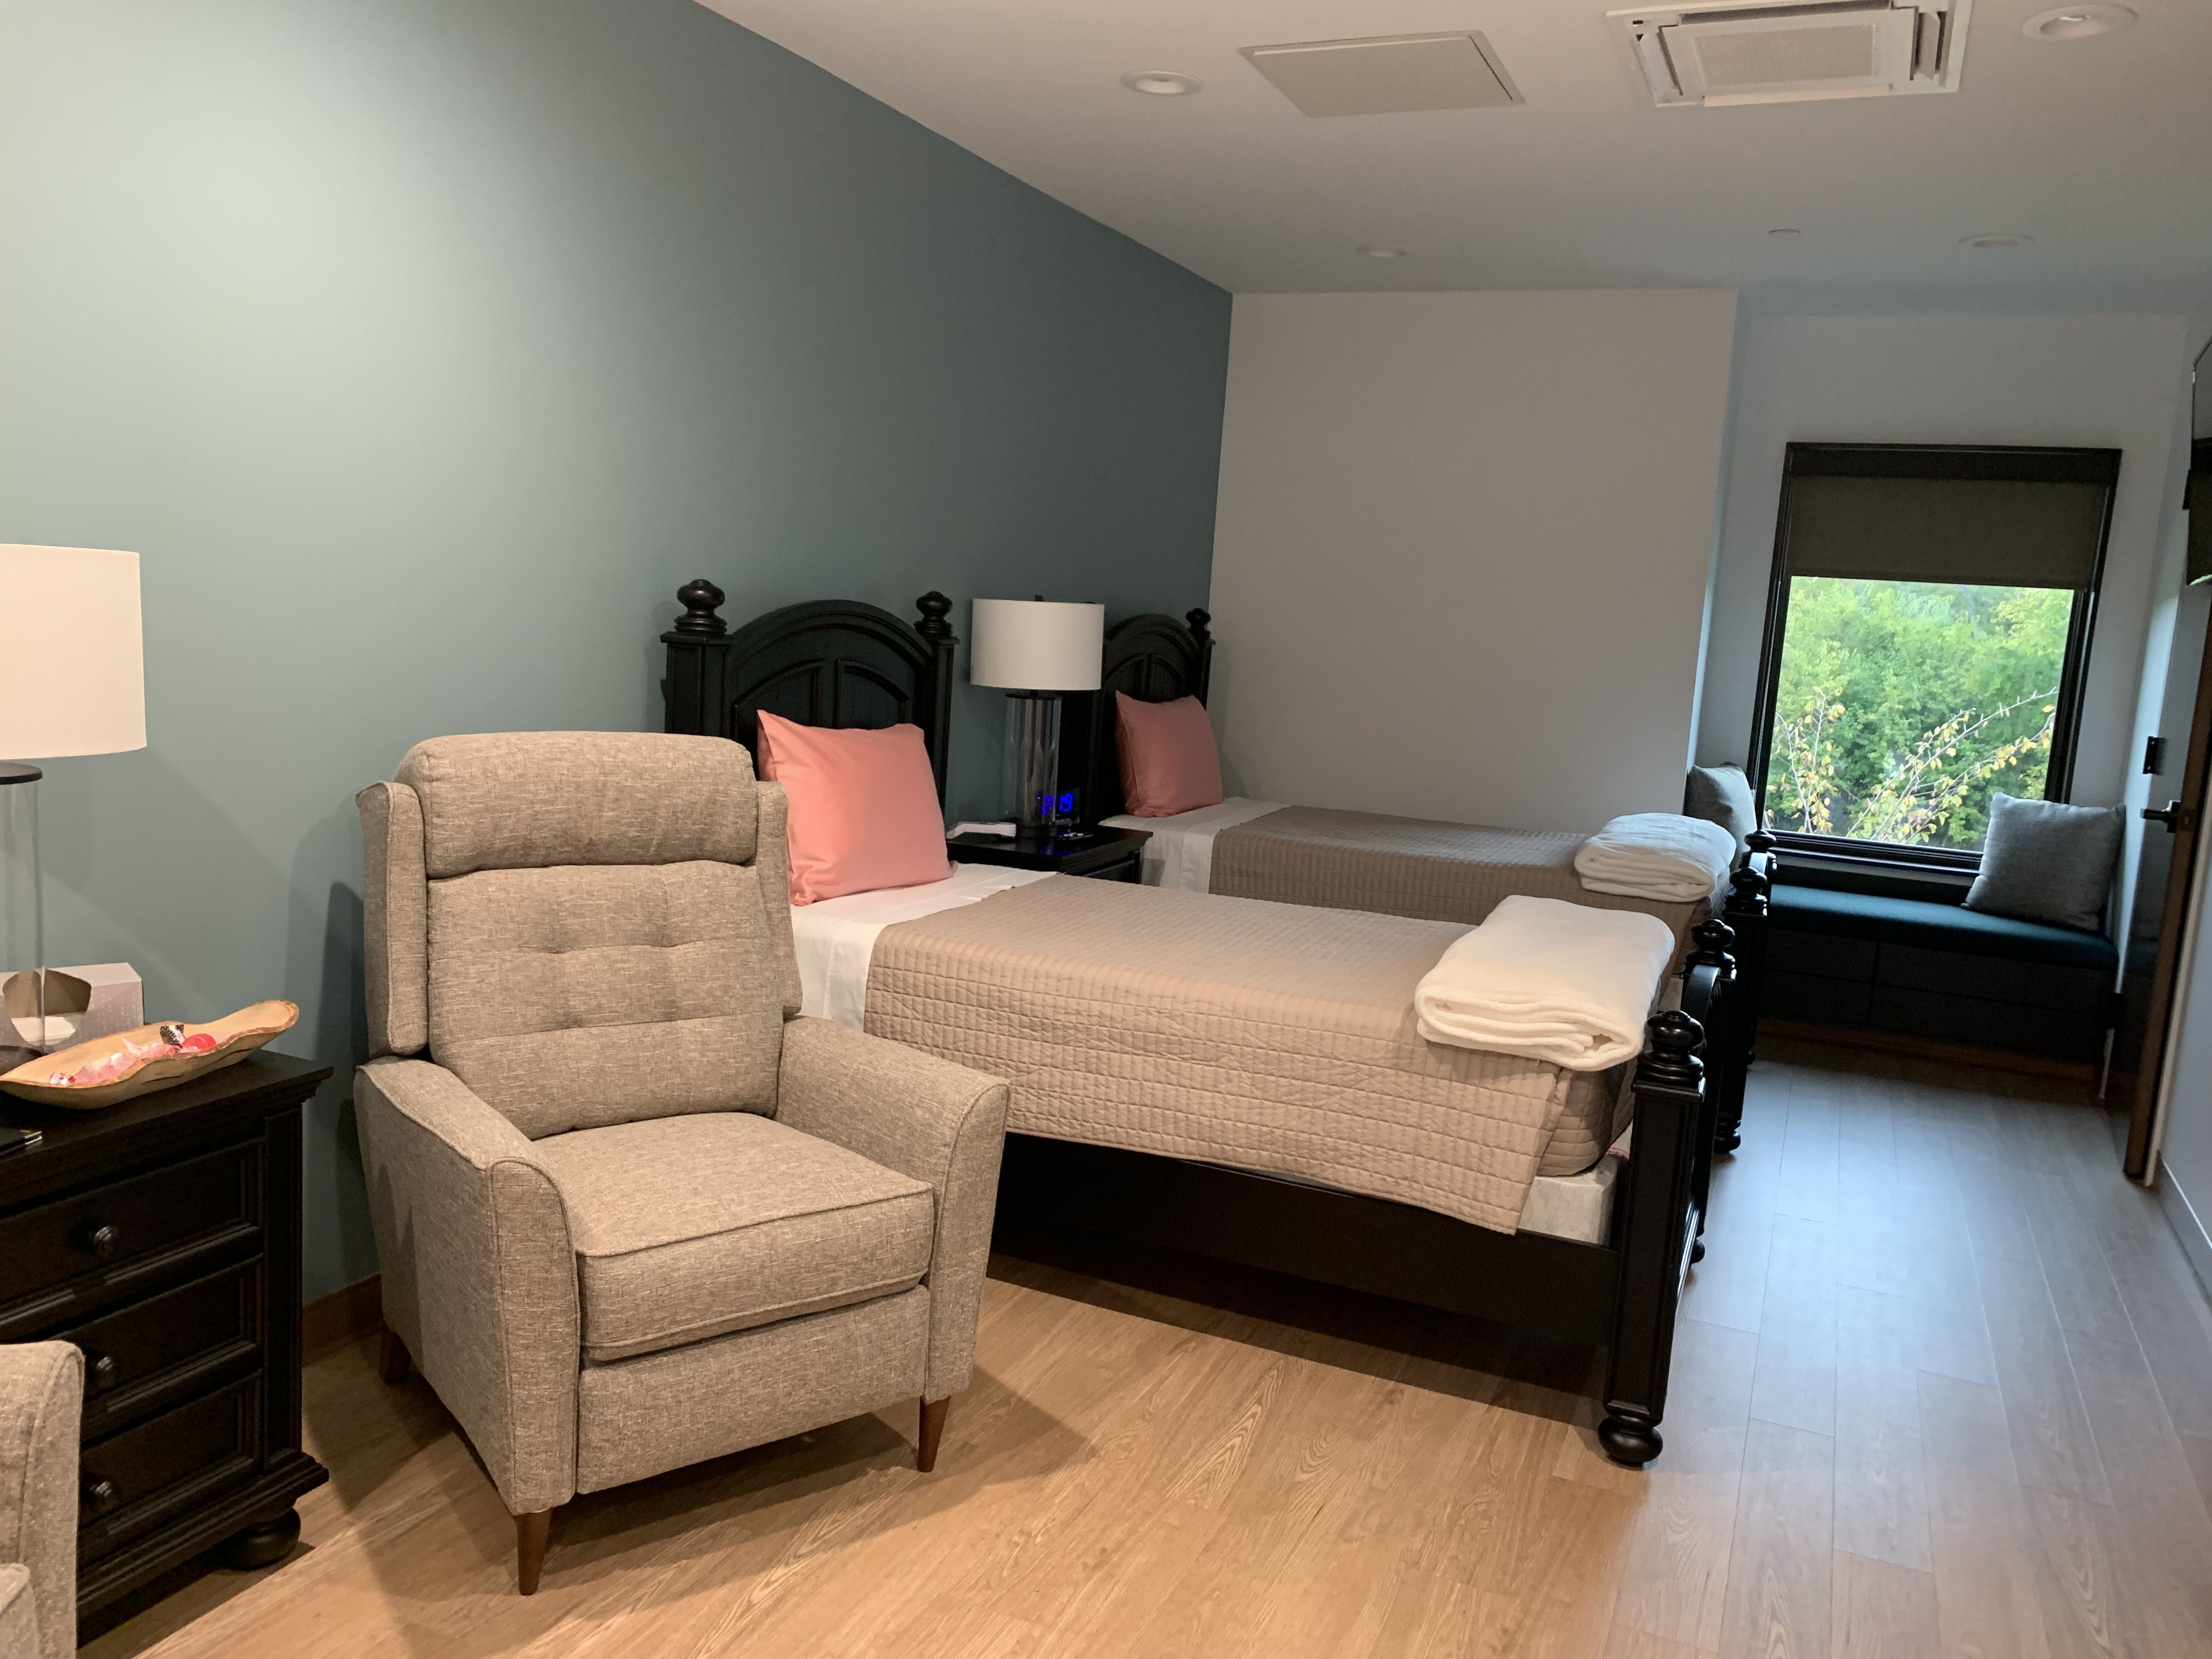 photo of room inside cancer support home